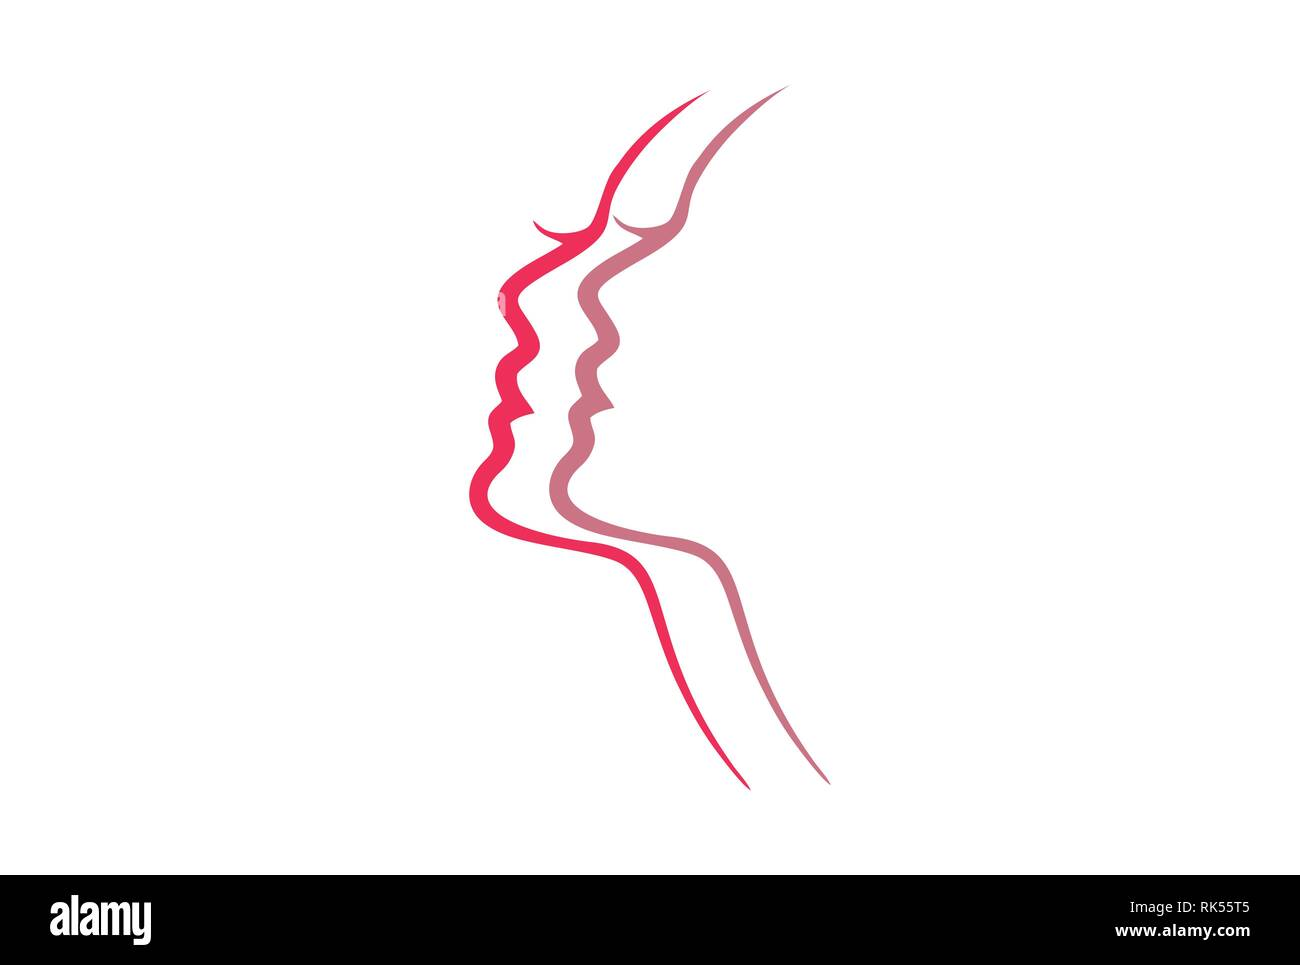 Abstract Beauty Woman Logo Icon For Beauty Care Or Skin Care Or Spa Stock Photo Alamy